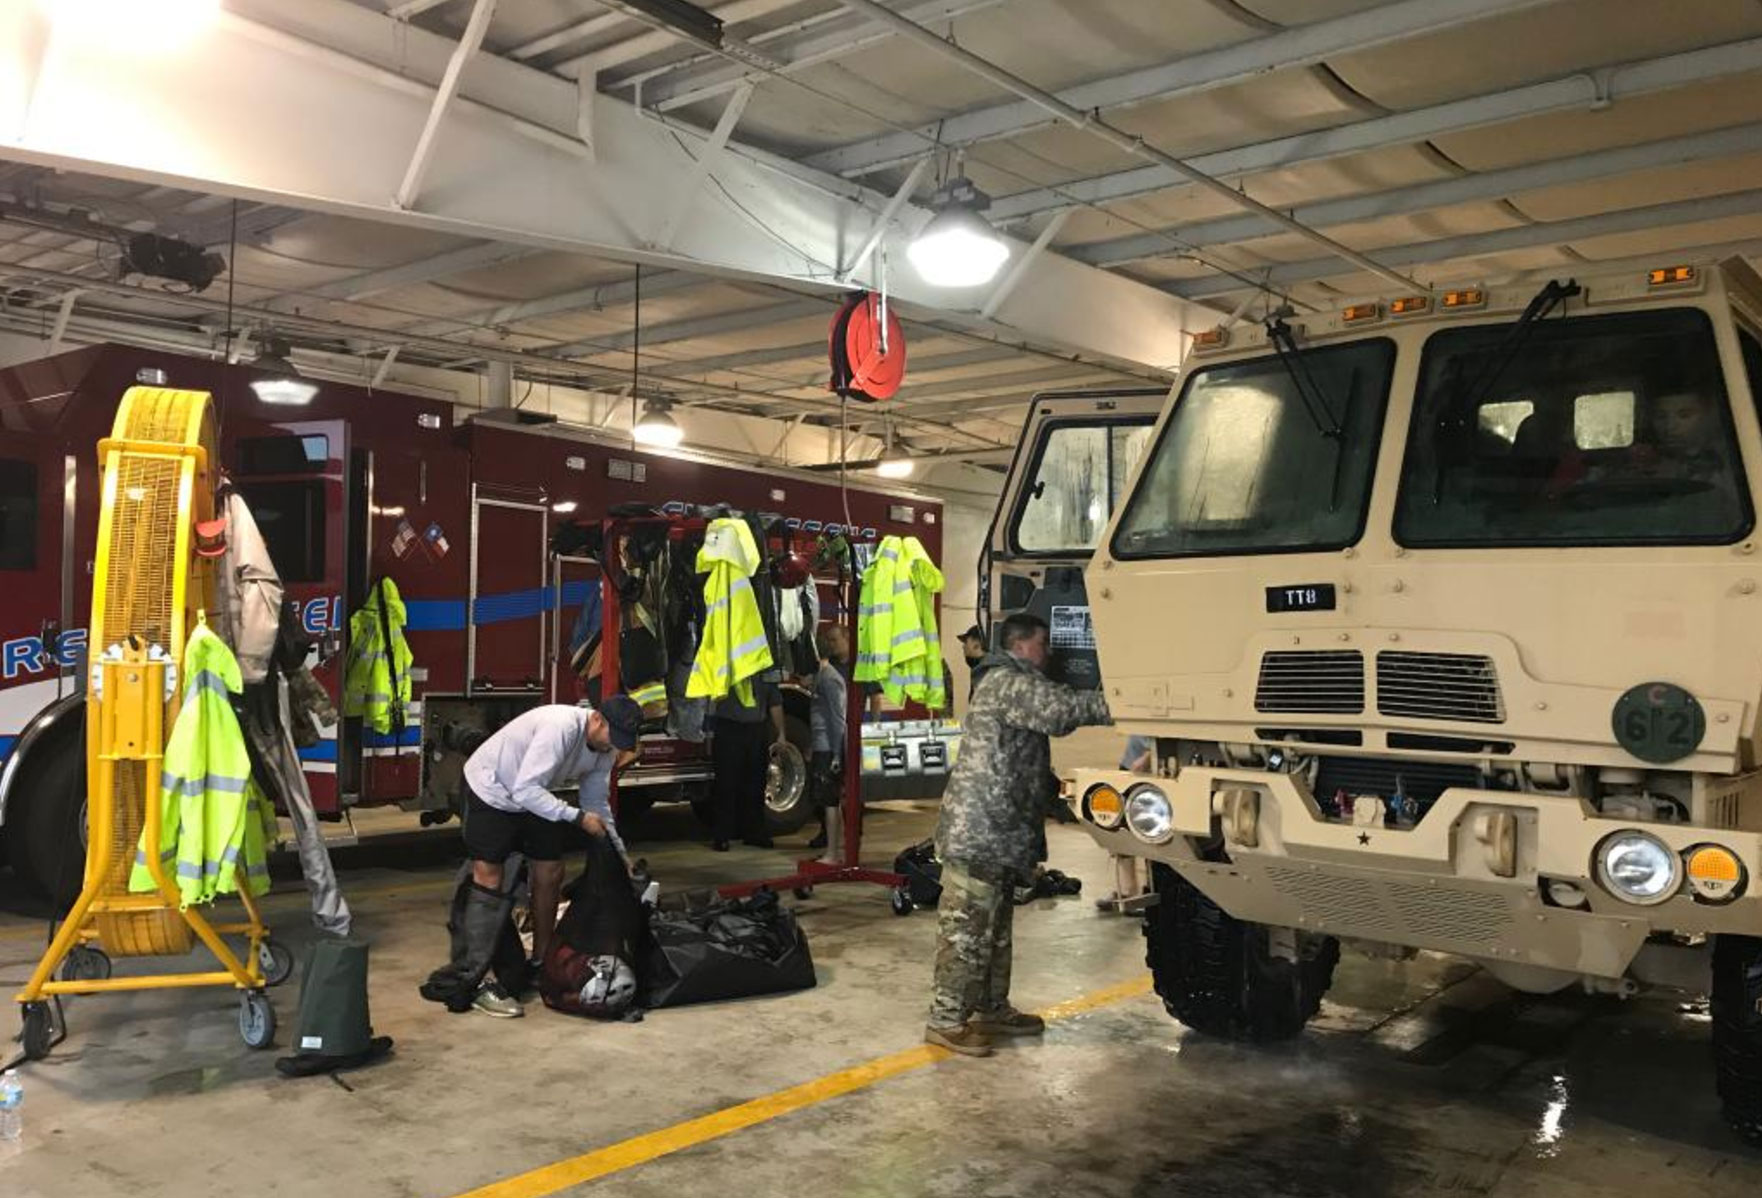 <div class='meta'><div class='origin-logo' data-origin='none'></div><span class='caption-text' data-credit='TXMilitary/Twitter'>''#PhotosFromtheField: One team, one mission. #TMDHarvey #Harvey,'' the Texas Military Department posted on Twitter.</span></div>